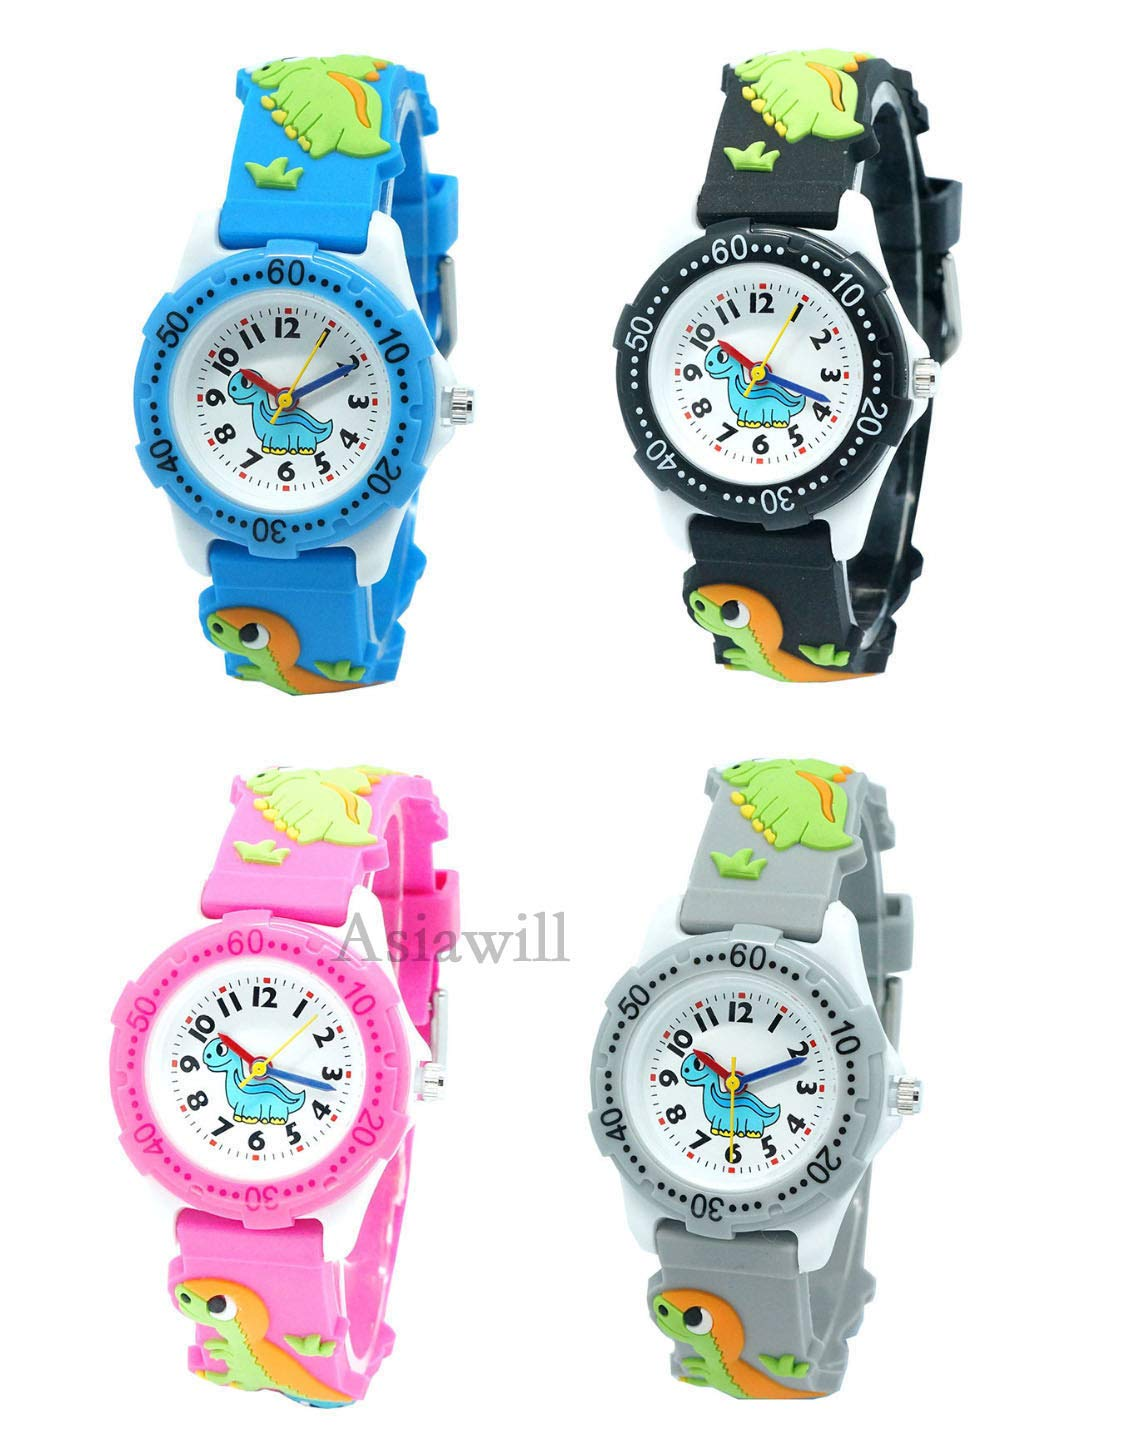 Asiawill 4 Pack Unisex Kids Students Watches Creative 3D Dinosaur Design Children Watches Analog Quartz Wrist Watch by Asiawill